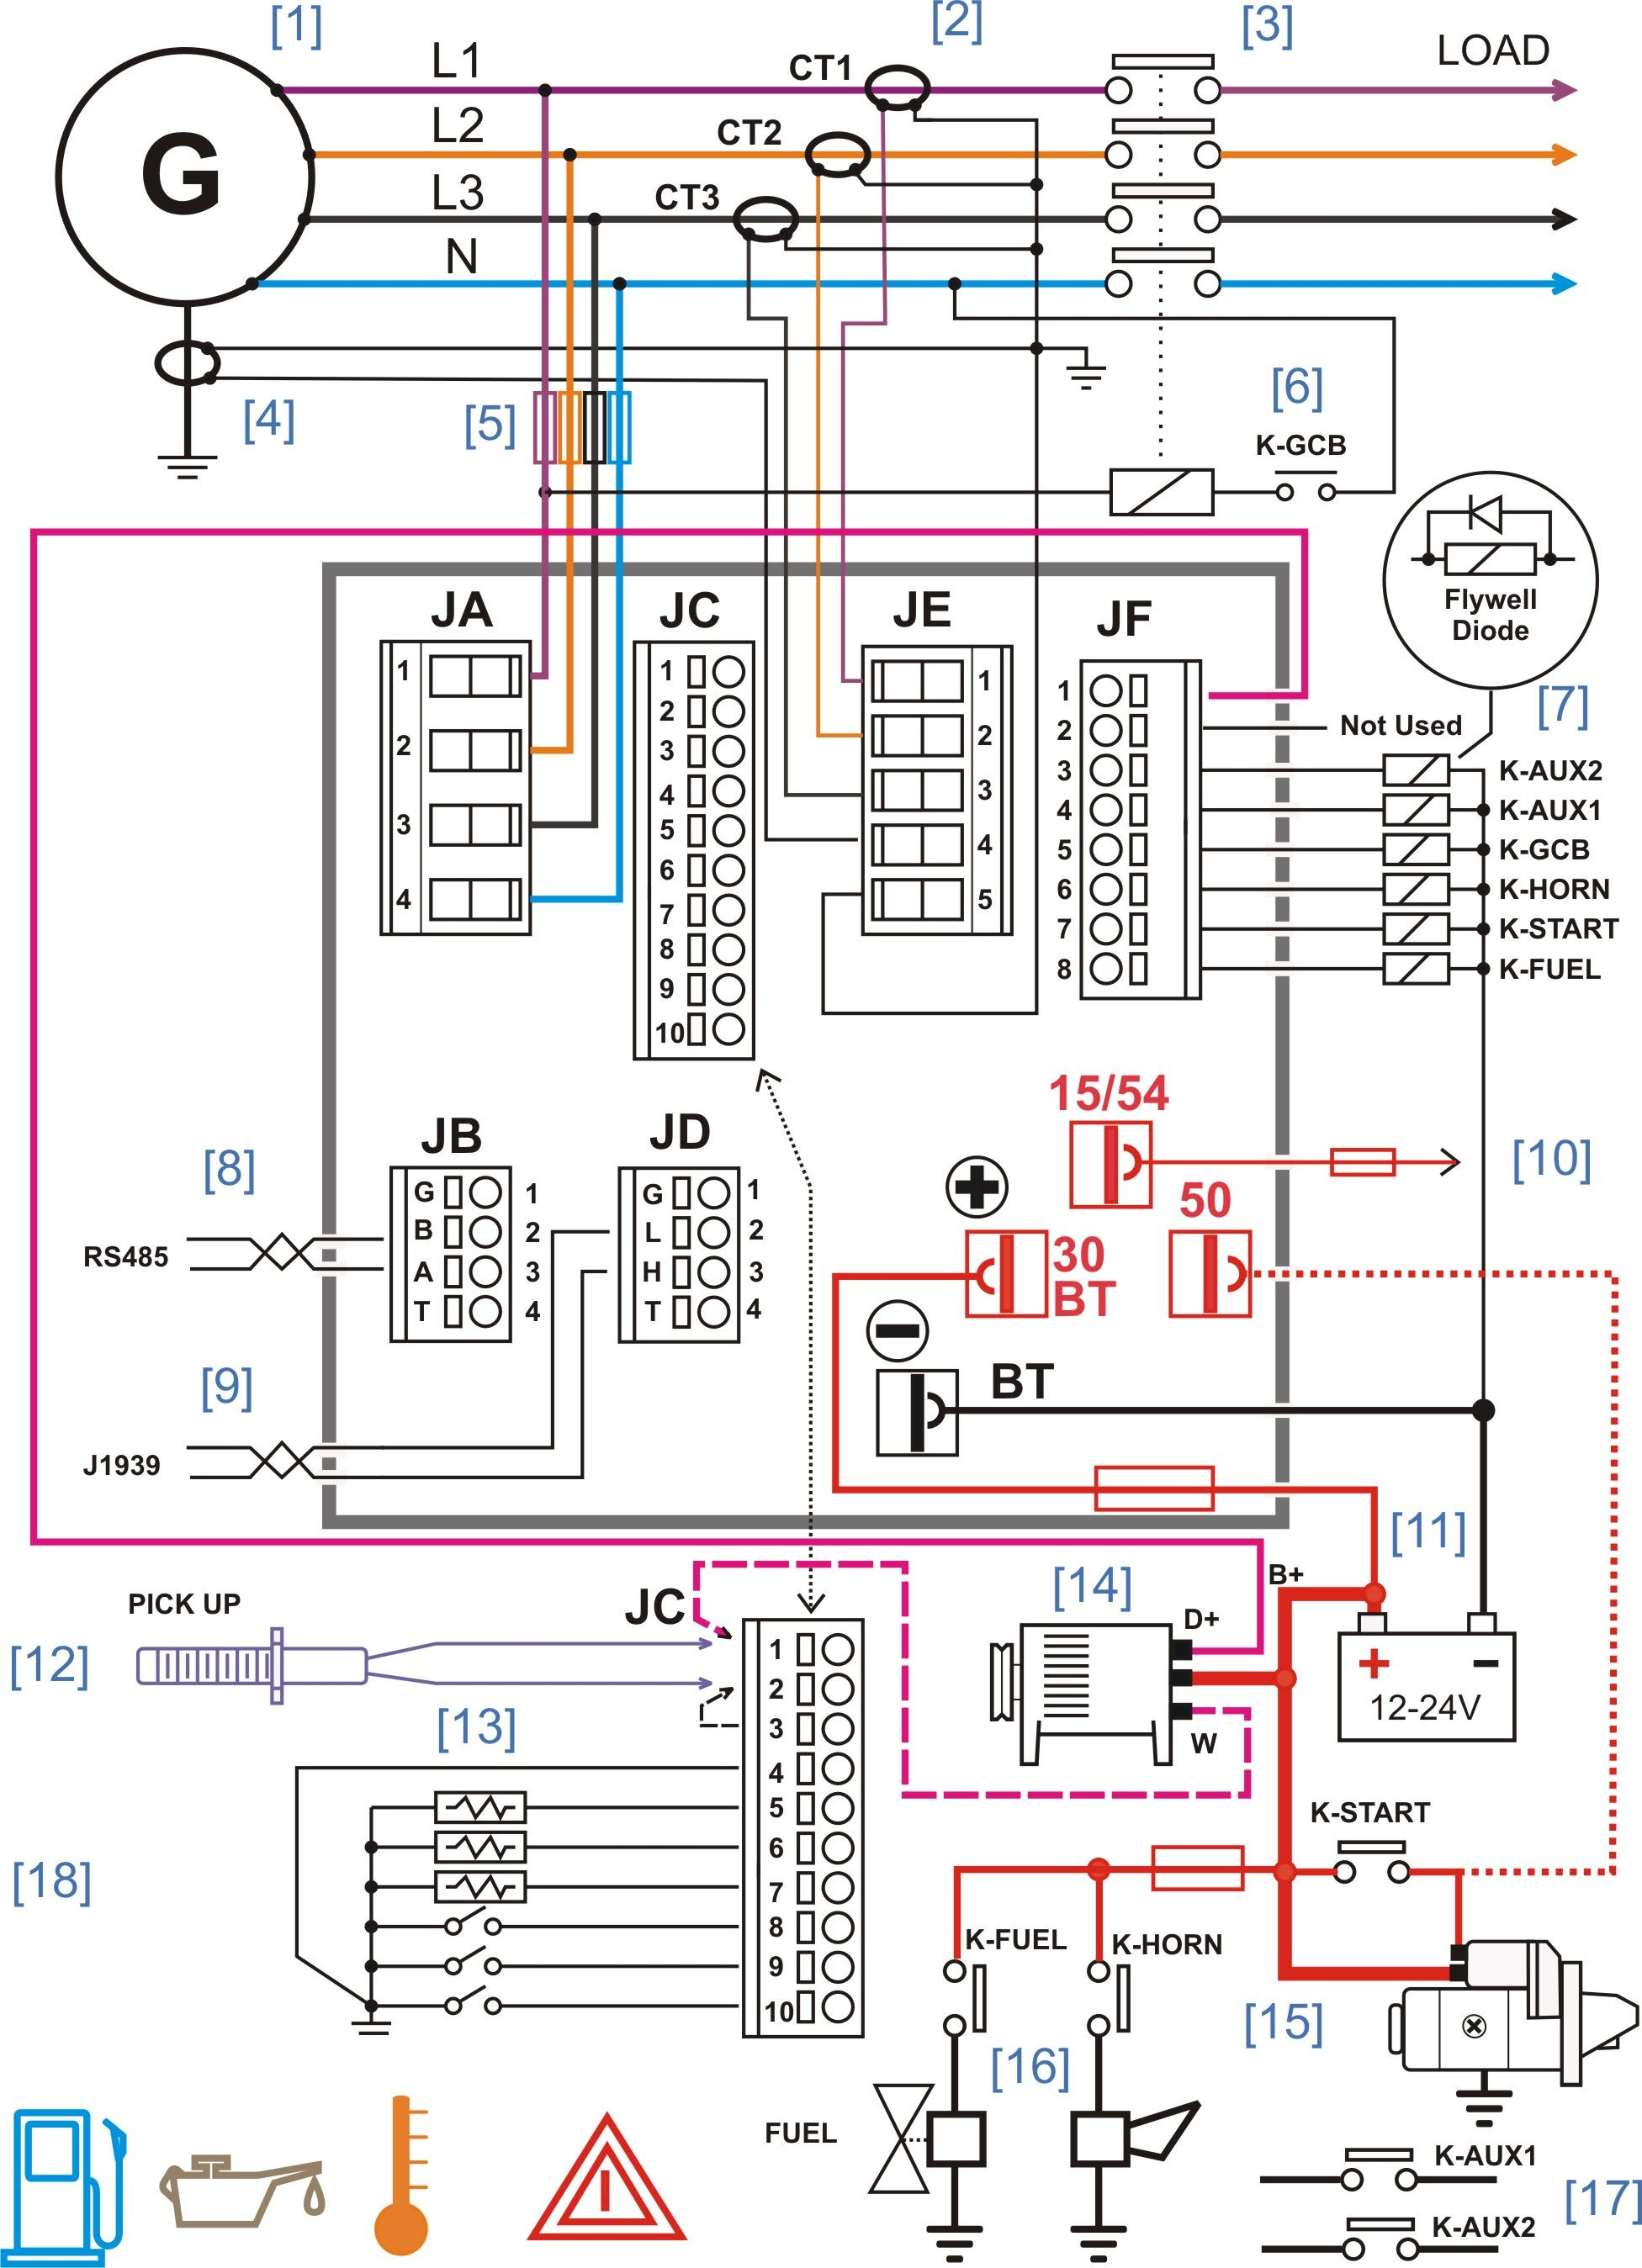 WRG-7799] Control Wiring Diagram Of Plc on 3-way dimmer diagram, leviton 4 way switch diagram, dimmer switch installation diagram, leviton three-way diagram, four-way switch diagram, 4 way relay wiring diagram, 4 way dimmer switch installation, lutron 4-way switch diagram,